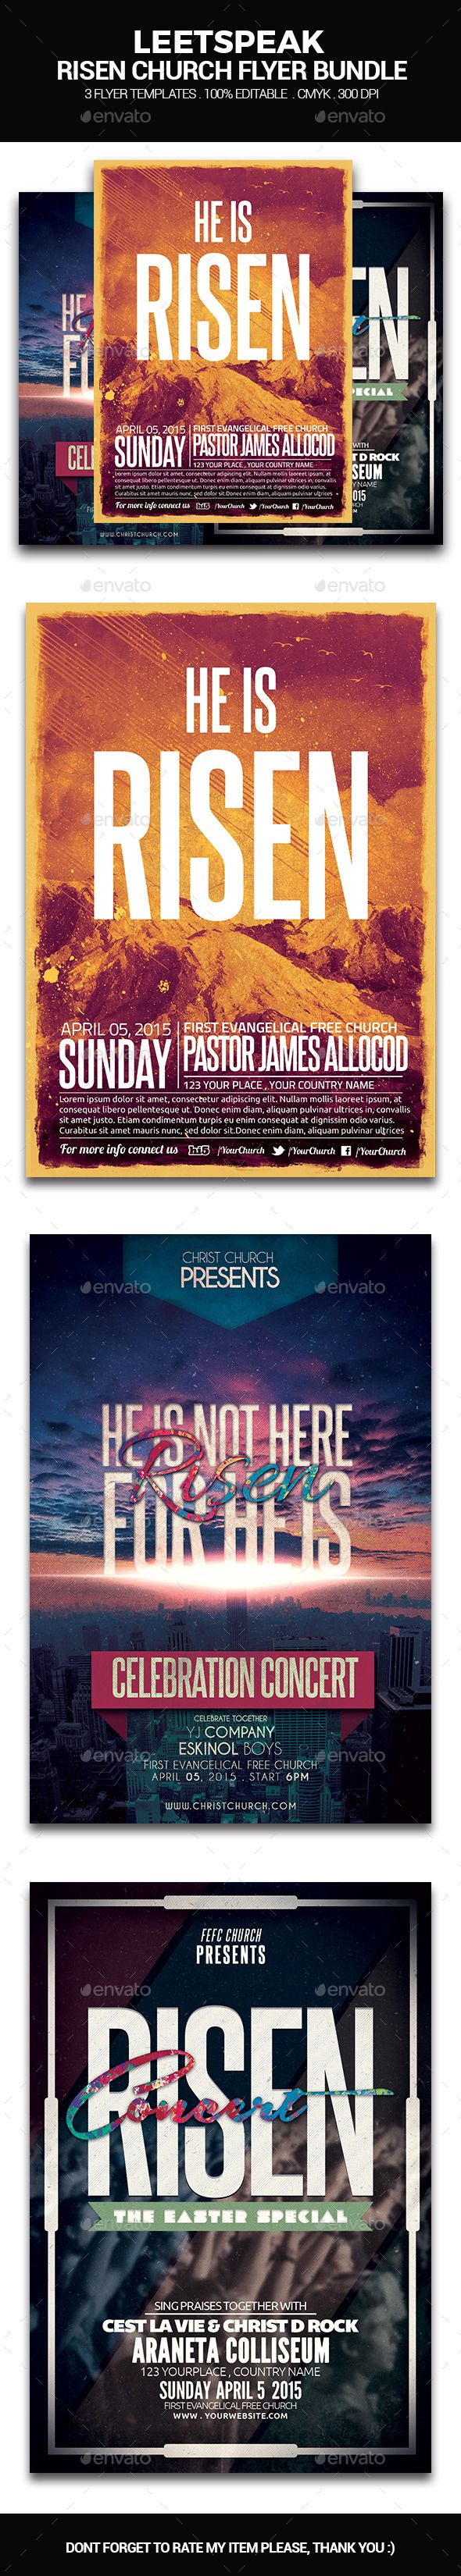 free church flyer templates photoshop - 9 best yes photoshop psd images on pinterest font logo